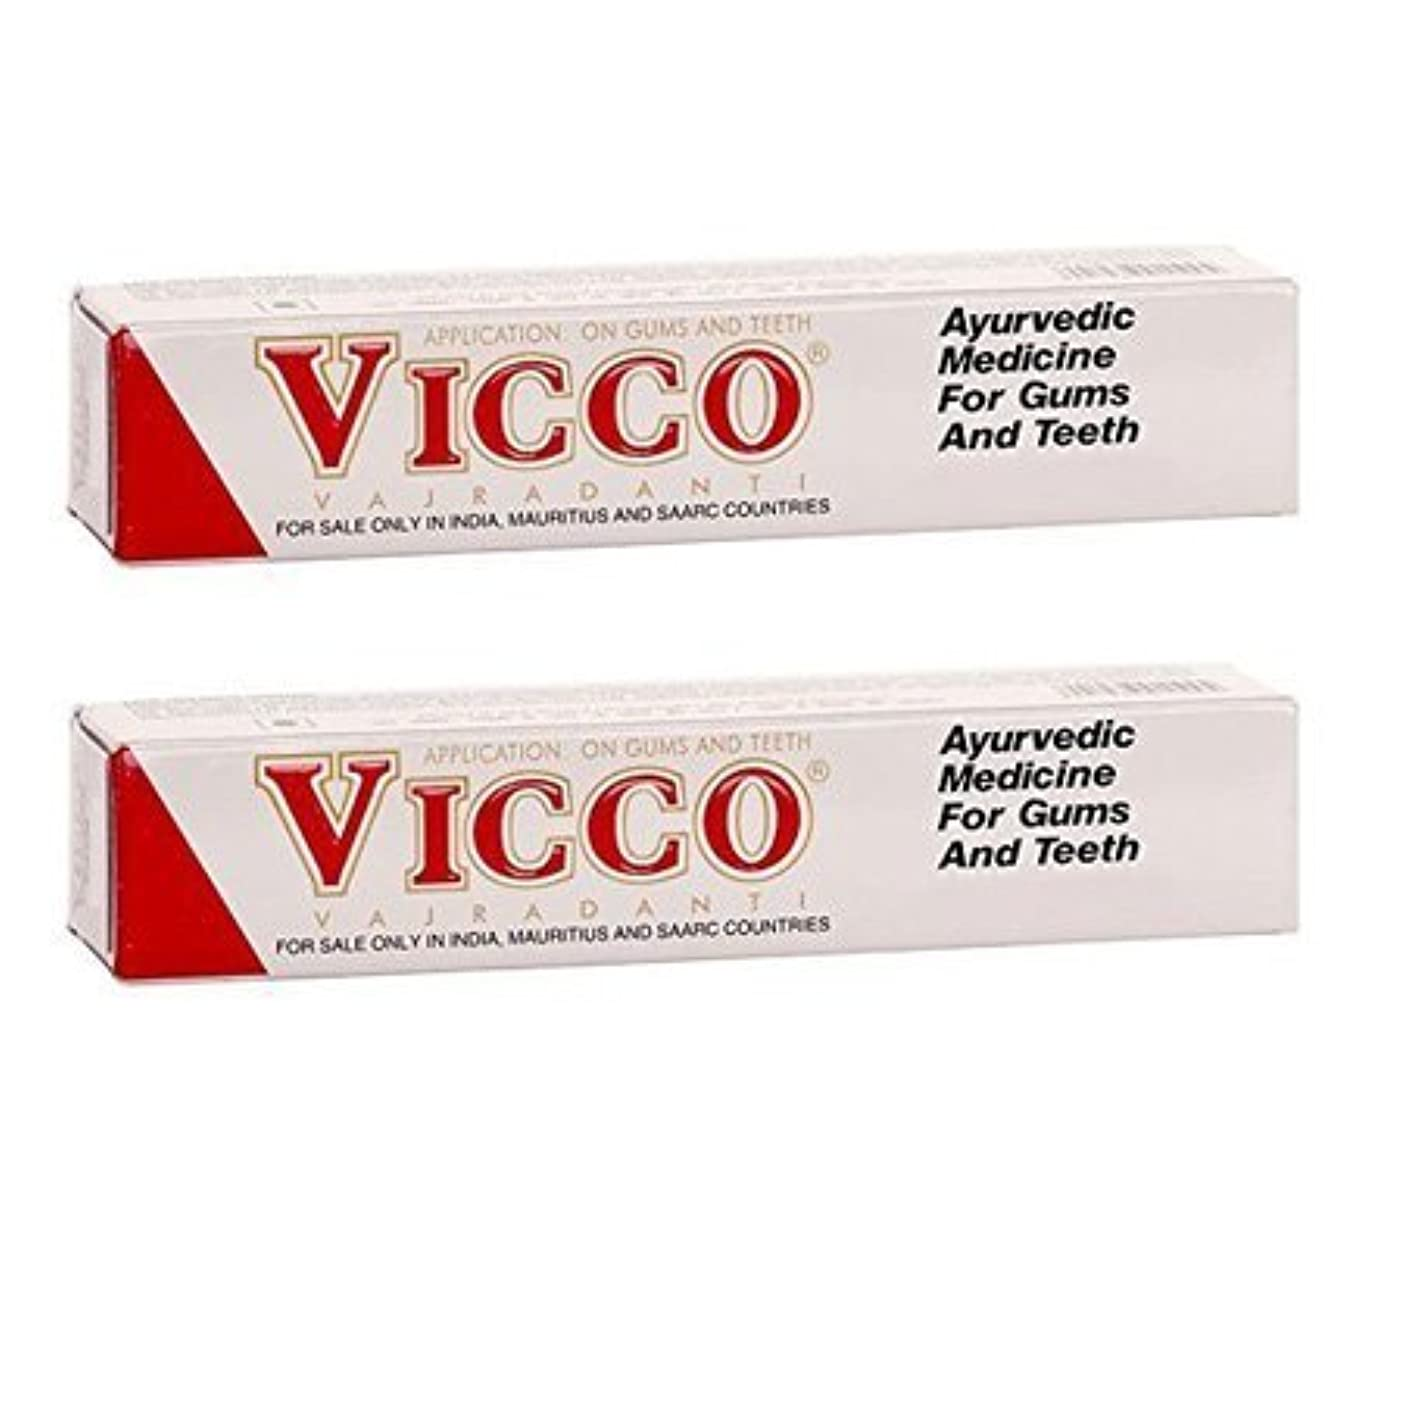 鬼ごっこ試すオズワルドBuycrafty Ayurvedic Herbal Toothpaste 100gm (Pack of 2) Vicco vajradanti Free 2 Dental Floss Toothpicks